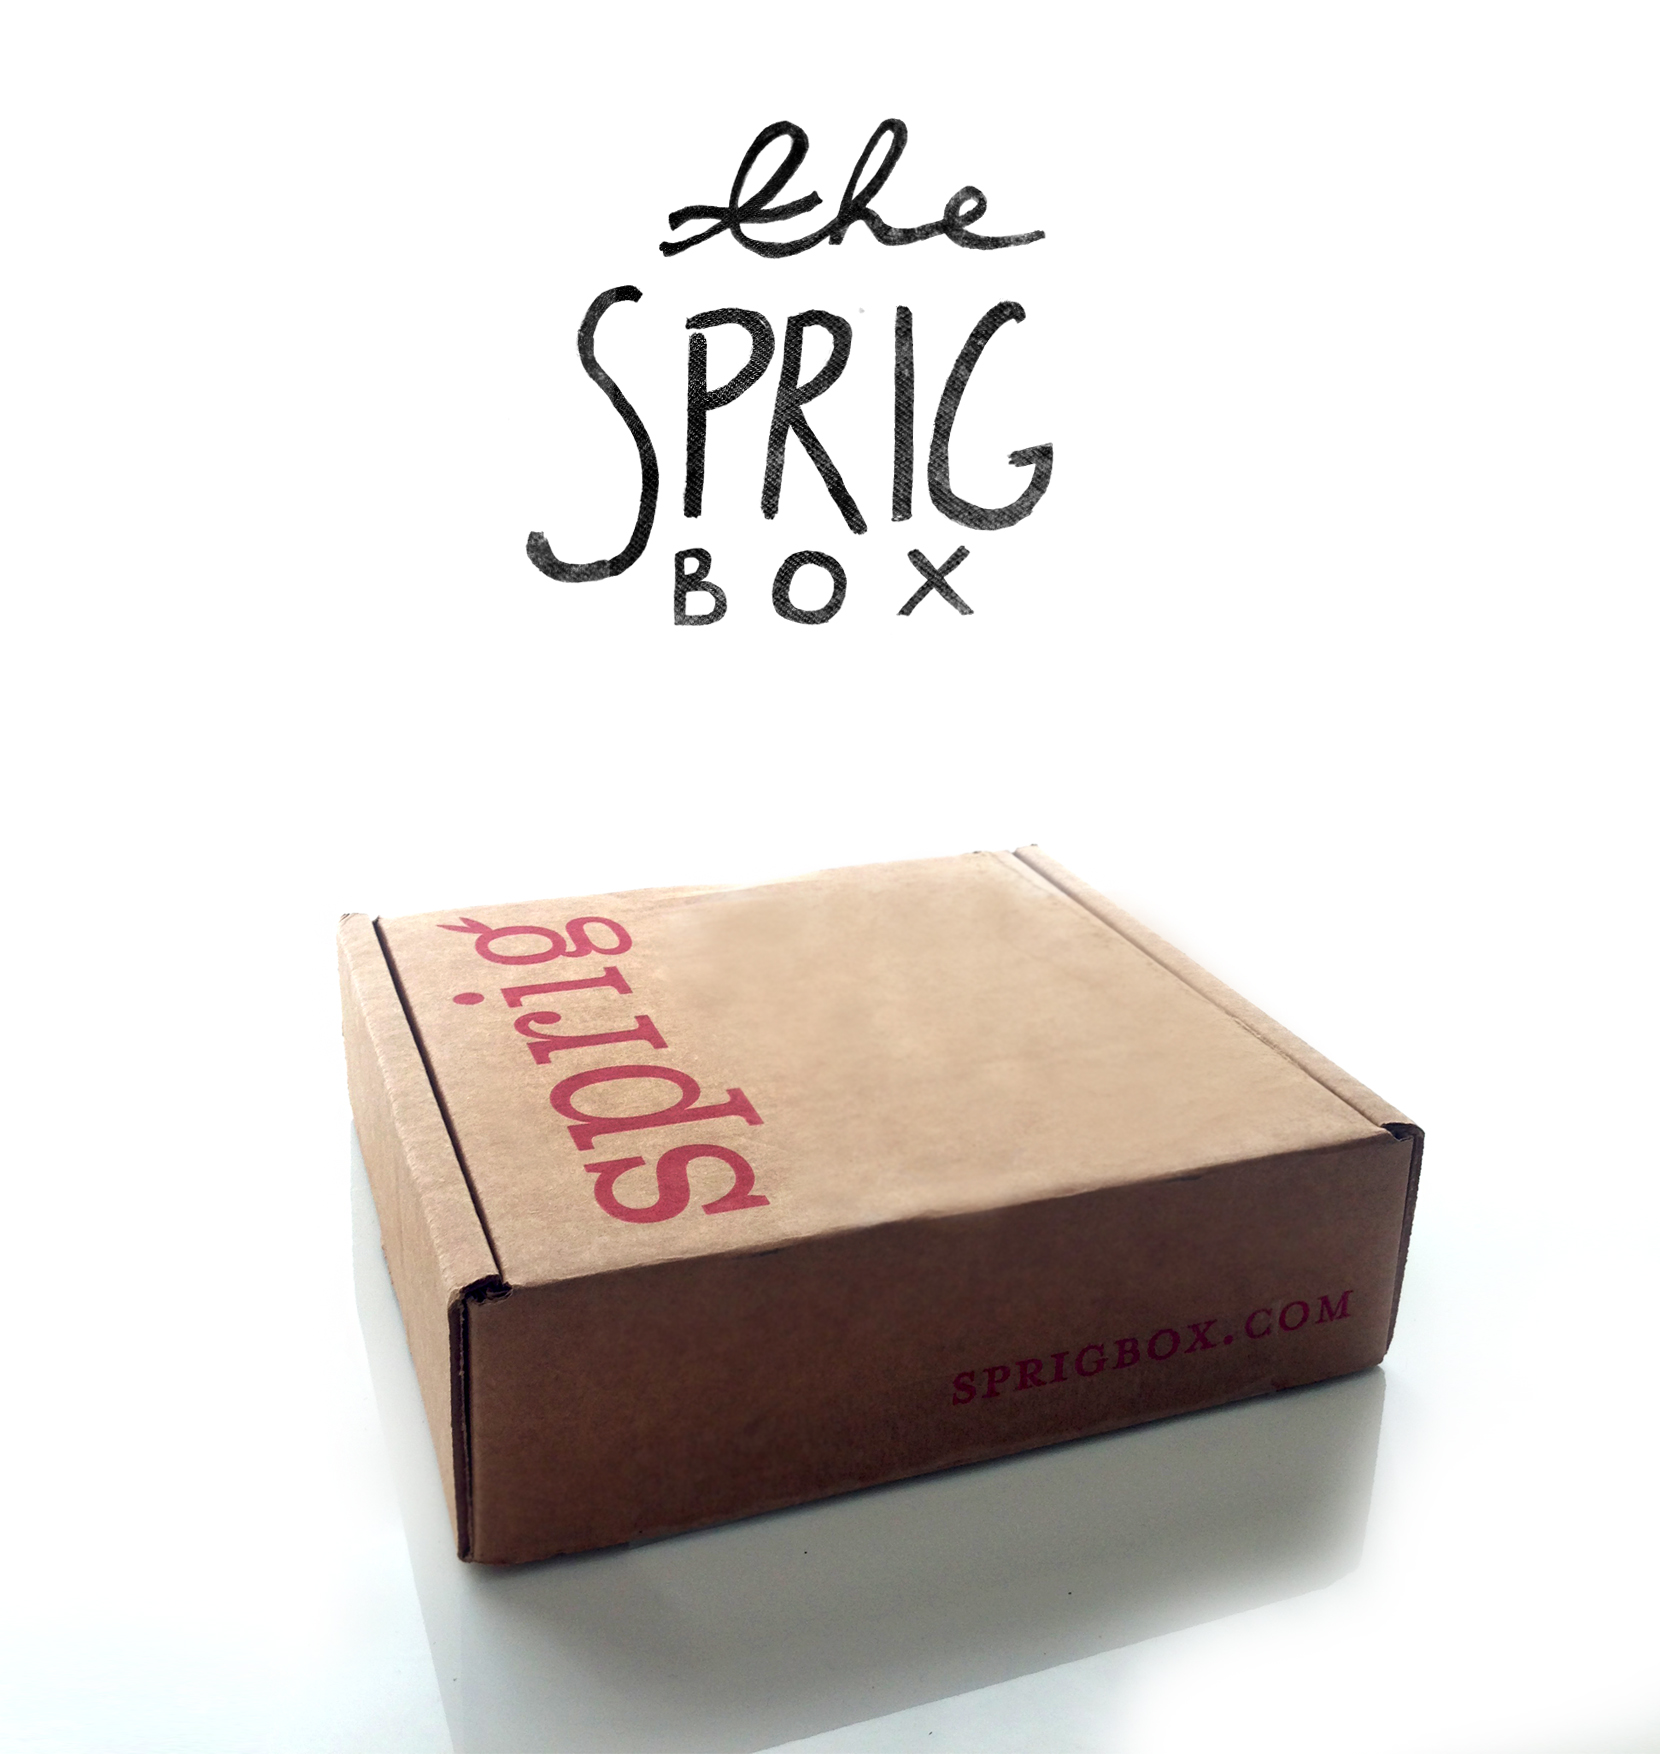 Sprig Box  |  The Fresh Exchange